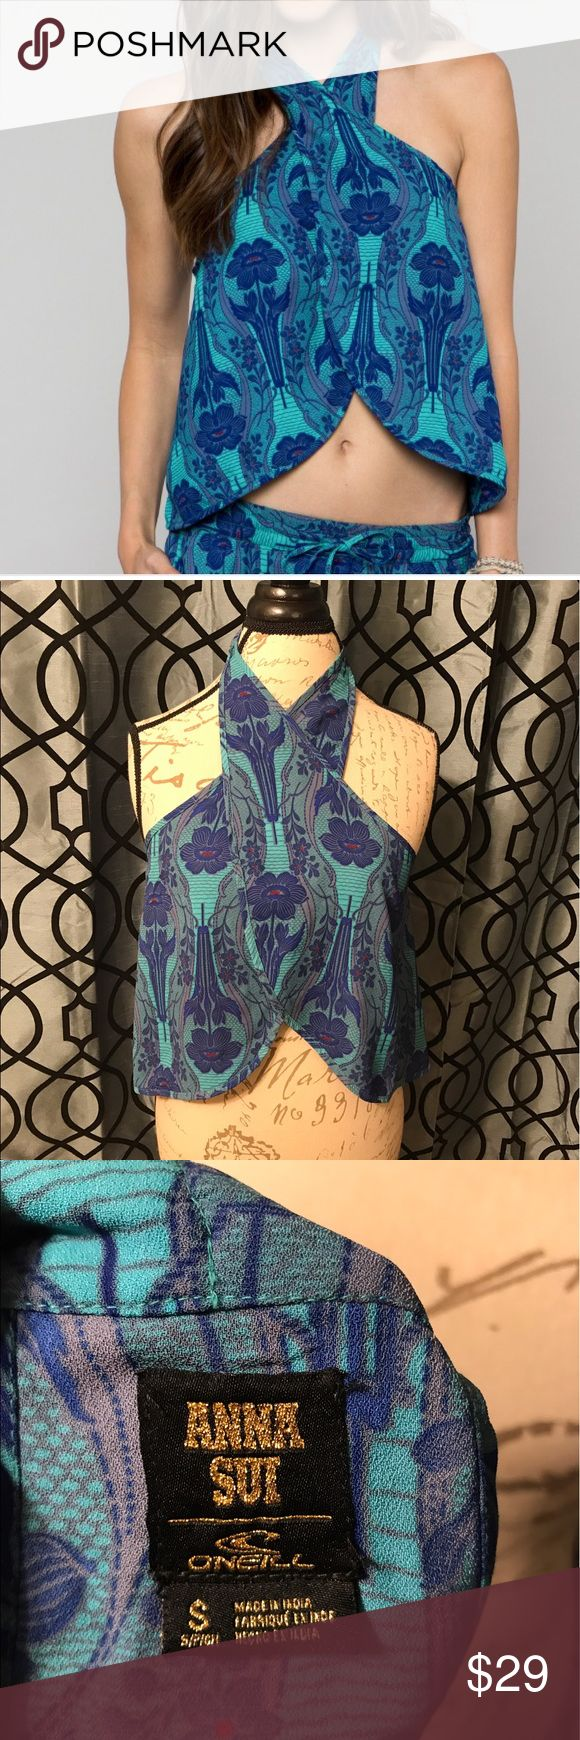 Anna Sui For O'Neill Gemini Beach Top Sz Small Amazing top, no flaws. Excellent condition Anna Sui for O'neill Tops Tank Tops